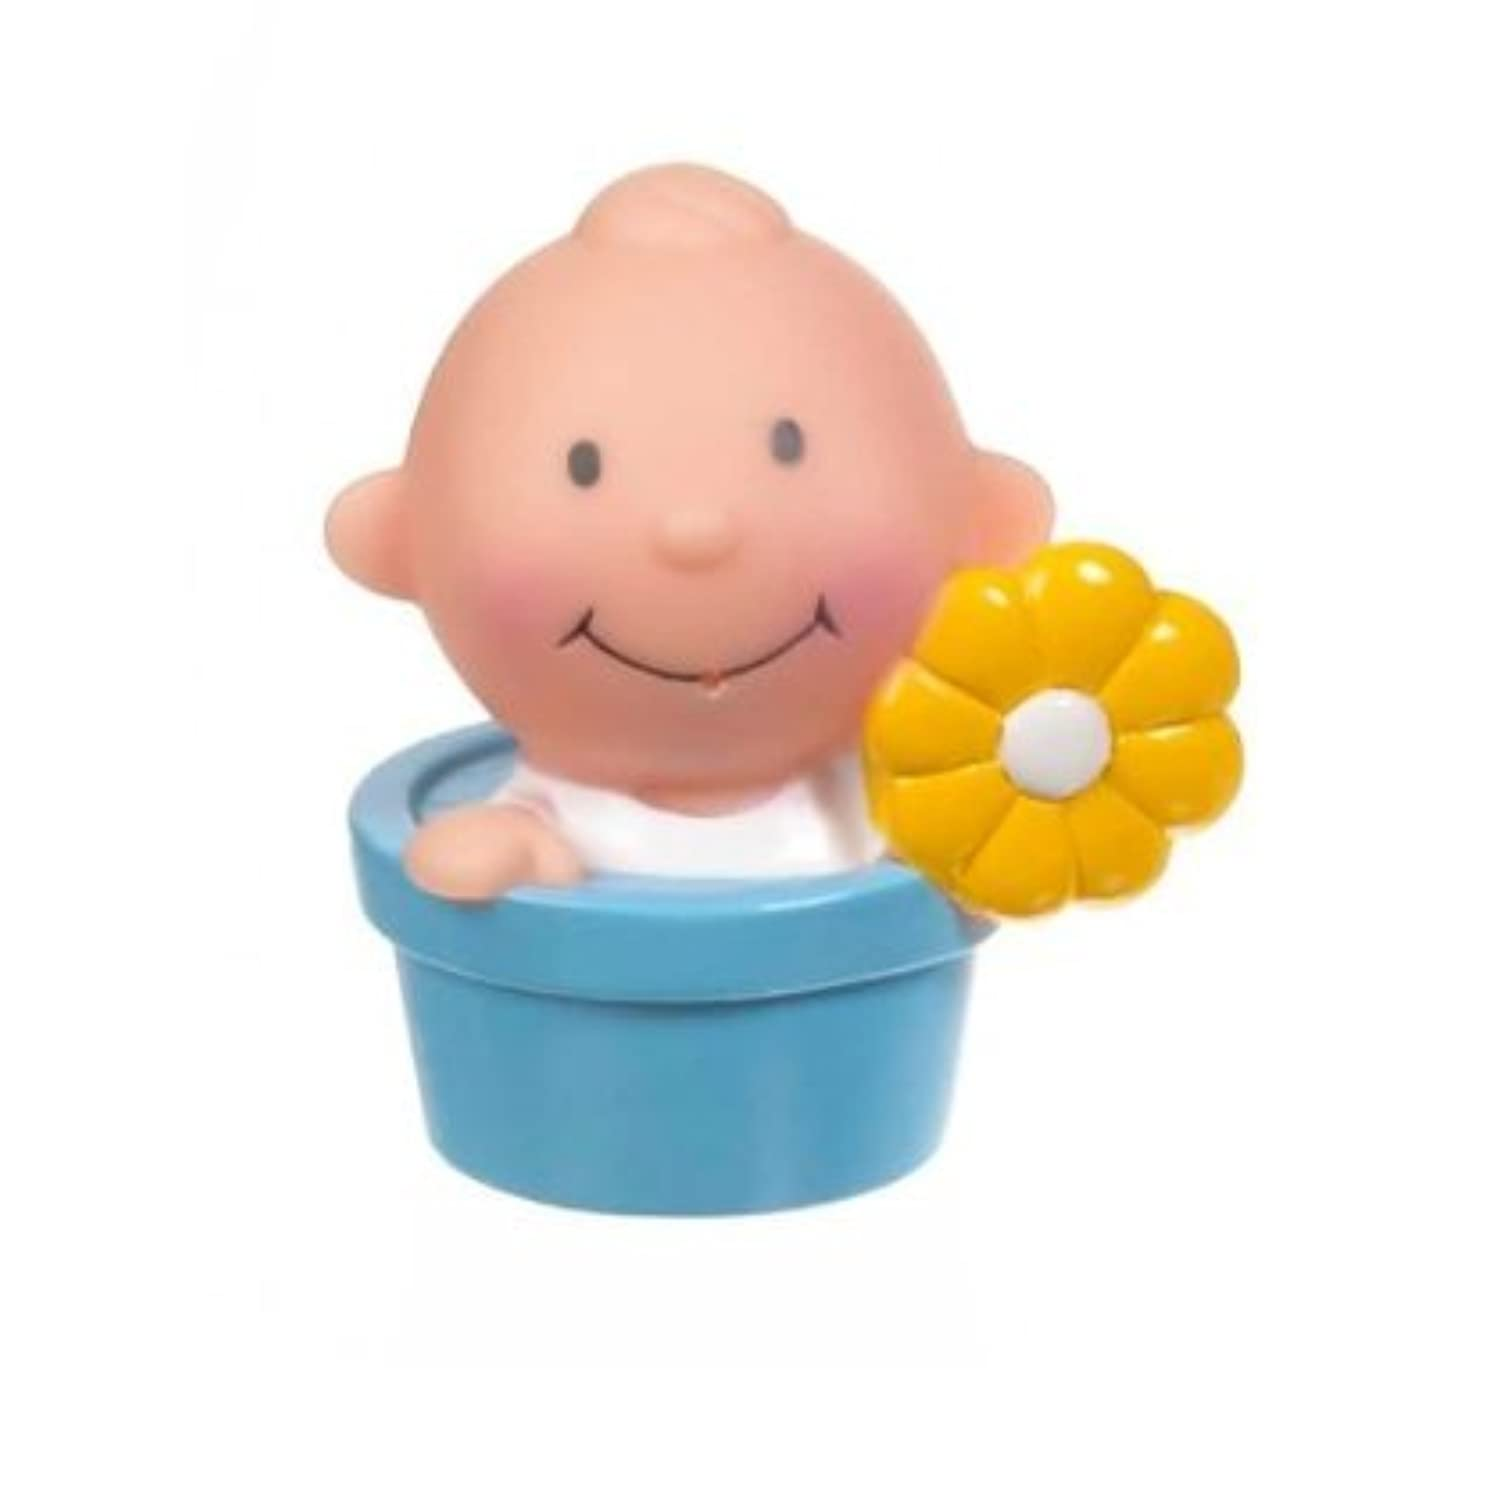 Blue Baby in Flower Pot Bath Squirter by Ganzおもちゃ[並行輸入品]